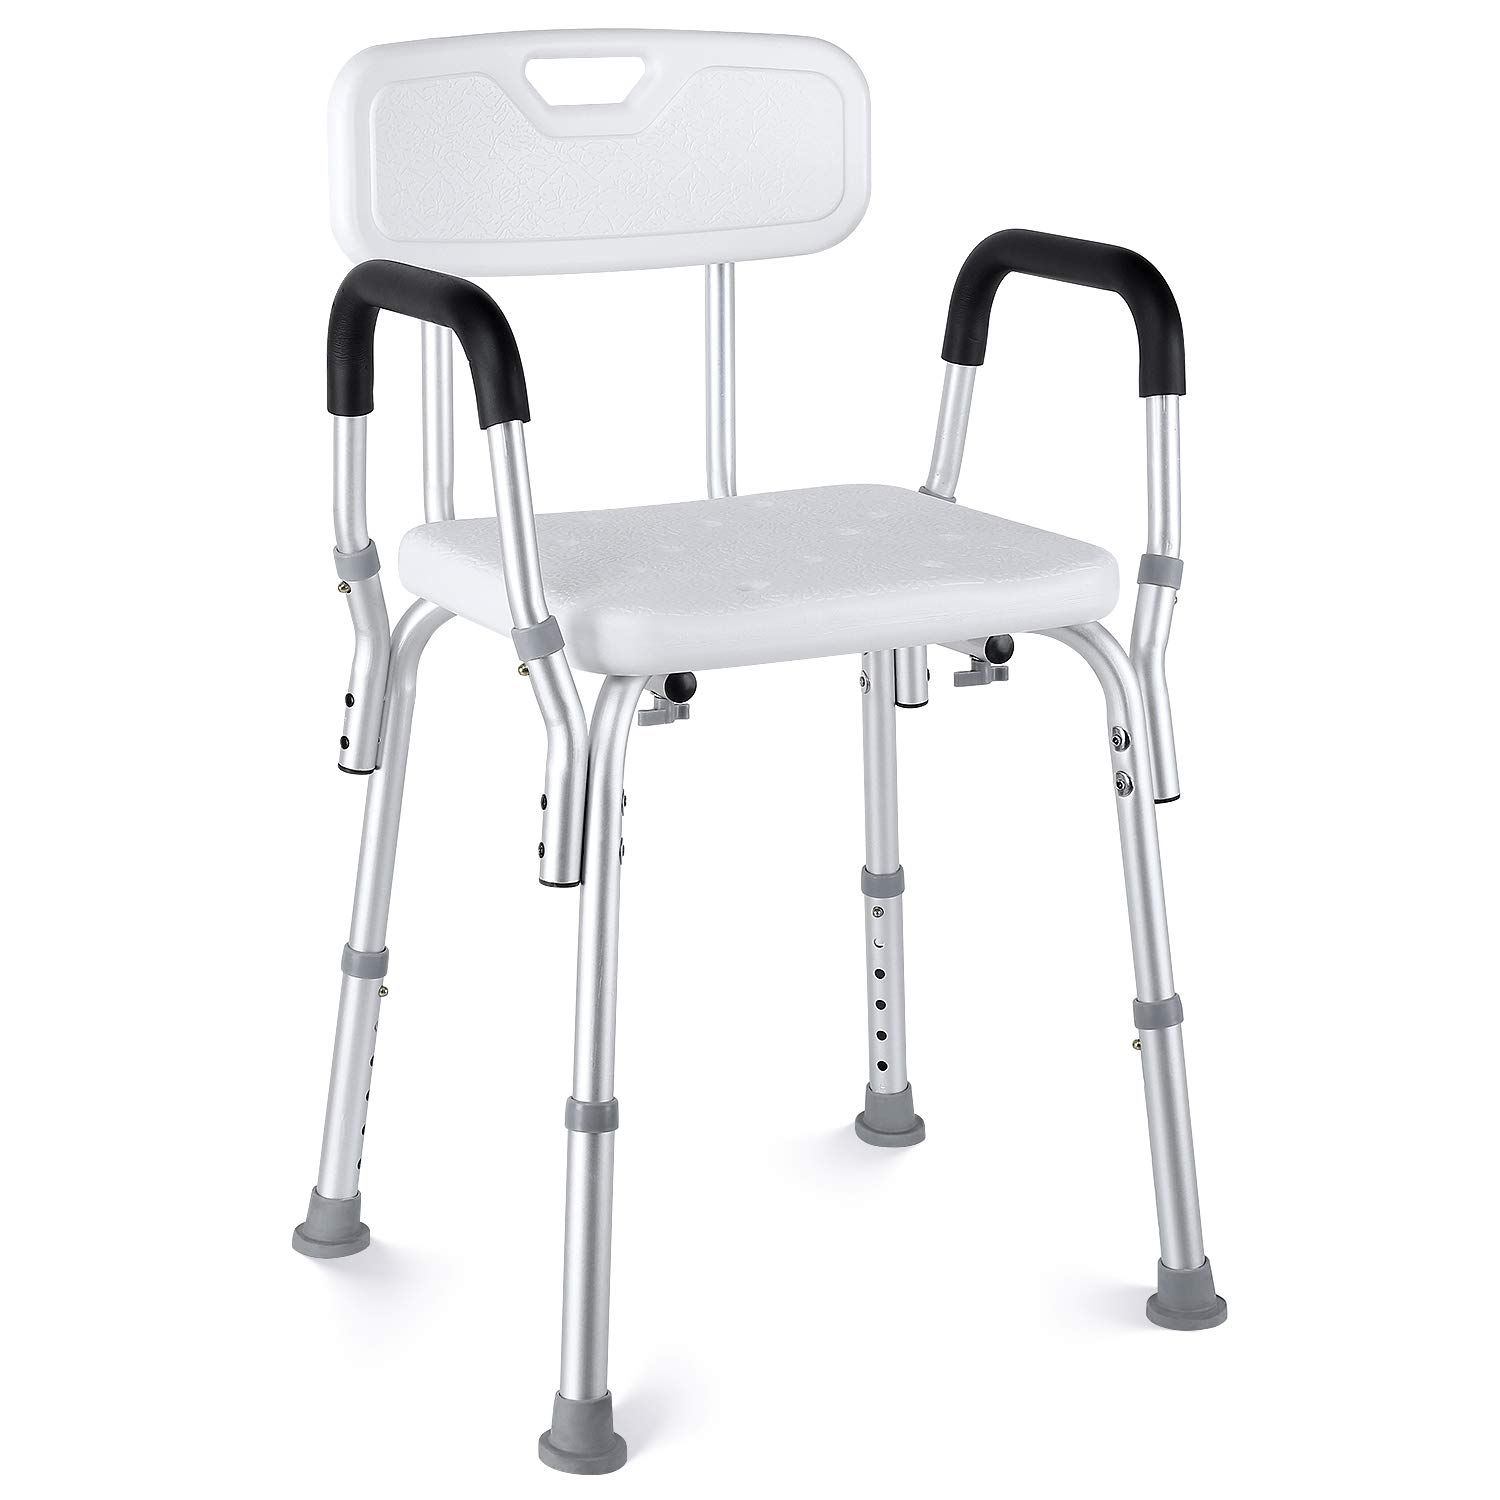 Amazon Com Hairby Shower Chair With Arms And Back Adjustable Height Medical Bath Tool Anti Skid And No Slip Bathtub Seat For Handicap Disabled Seniors And Elderly Health Personal Care